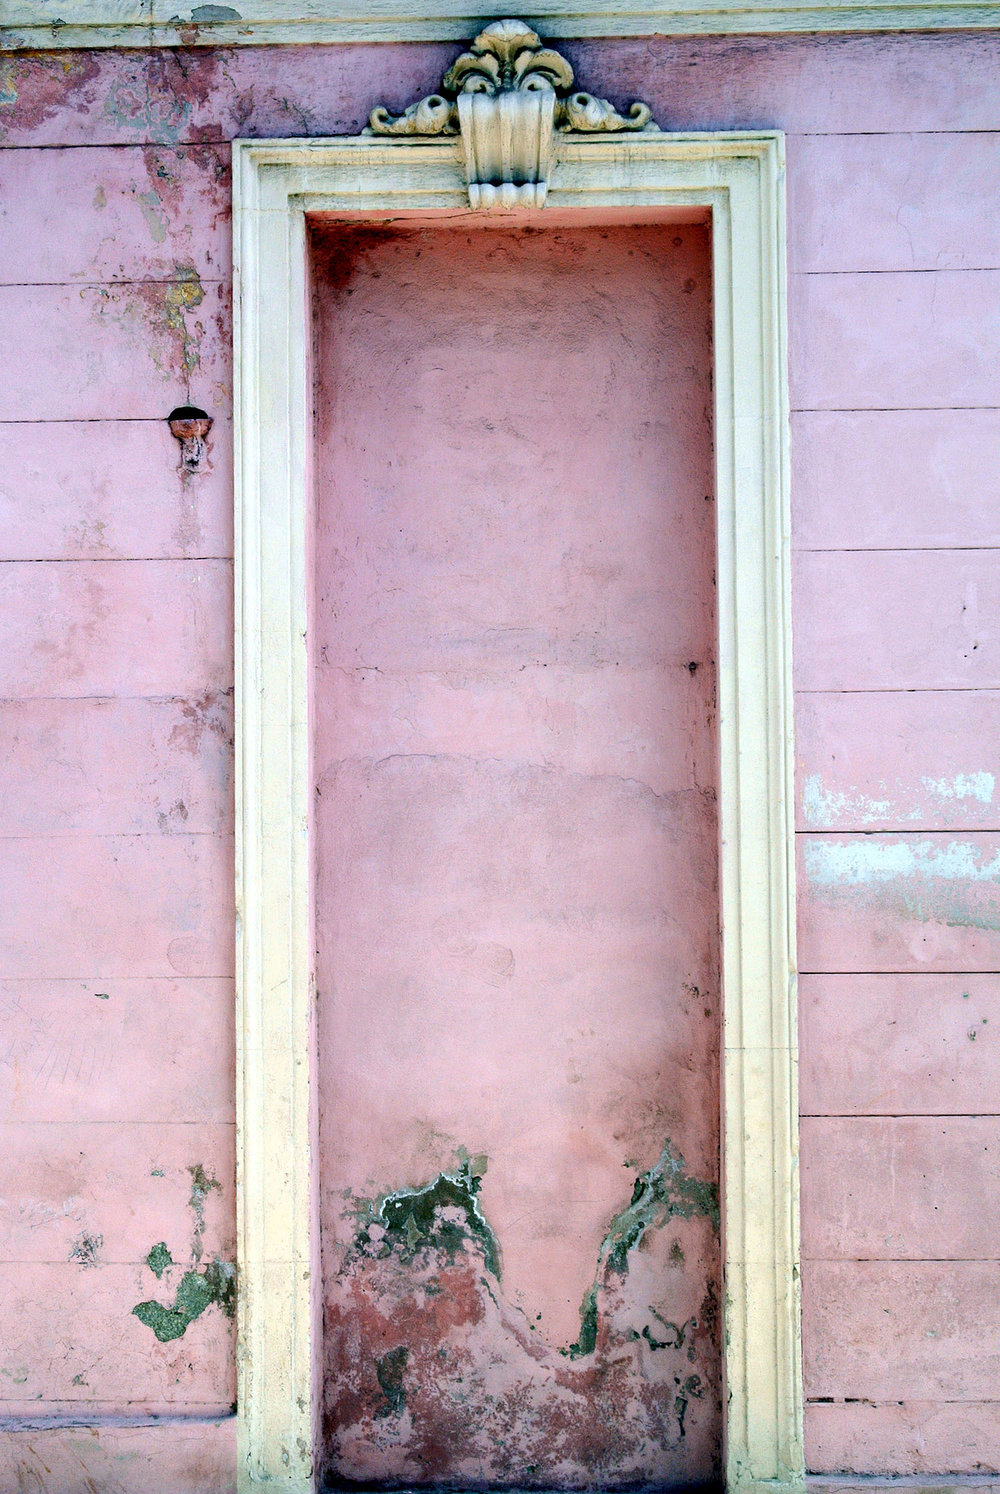 havana-city-wall-with-pink-alcove.jpg